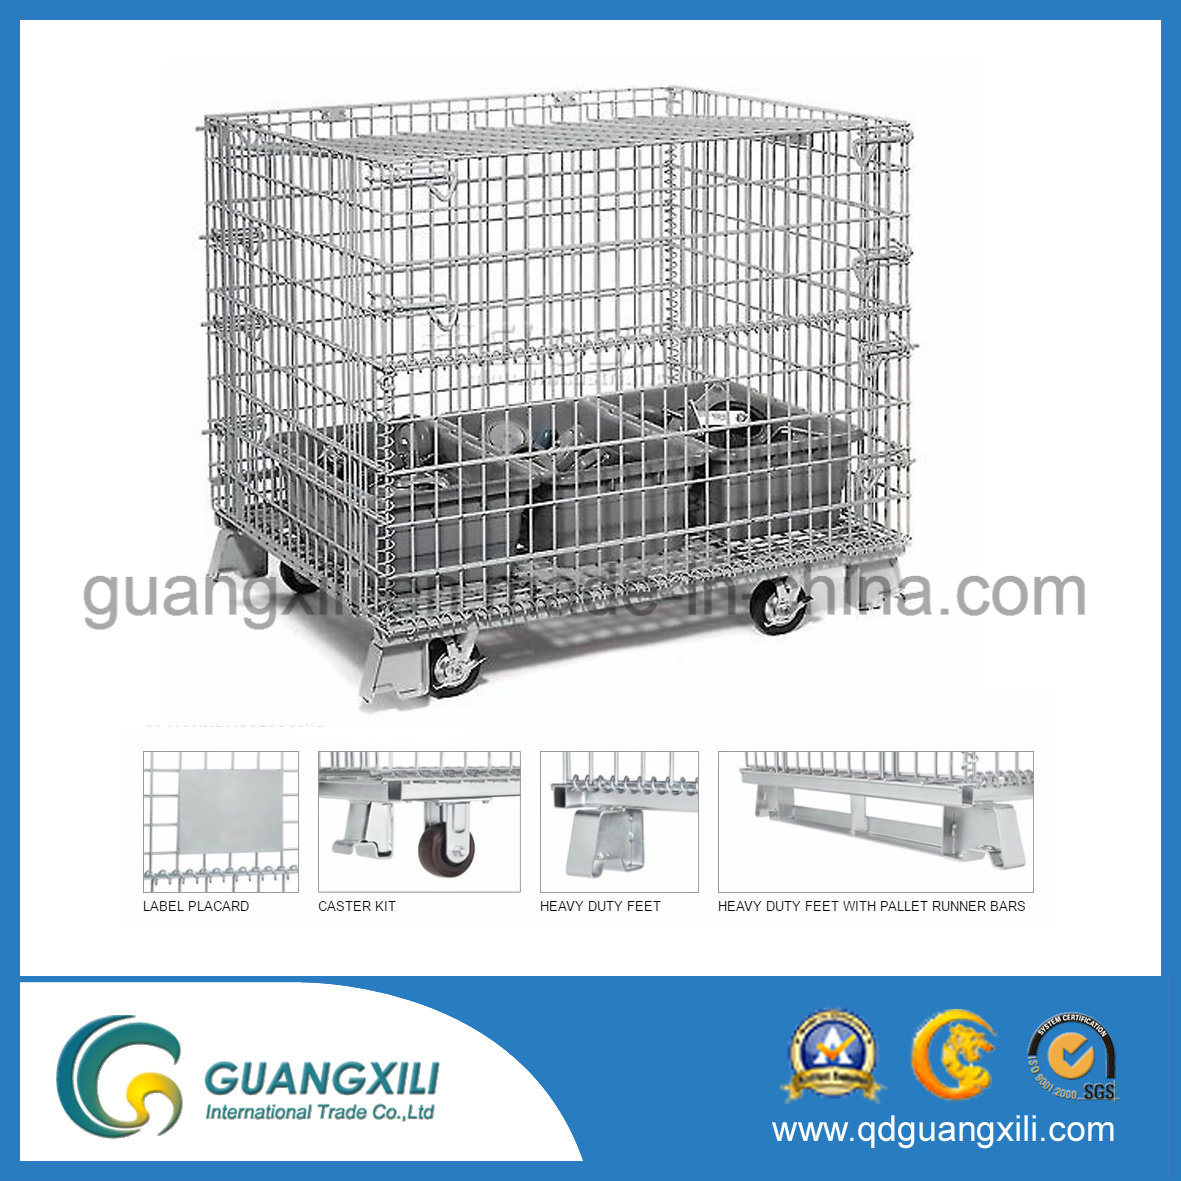 1200*1000*900 Heavy Duty Steel Storage Cage with Caster /Wheel